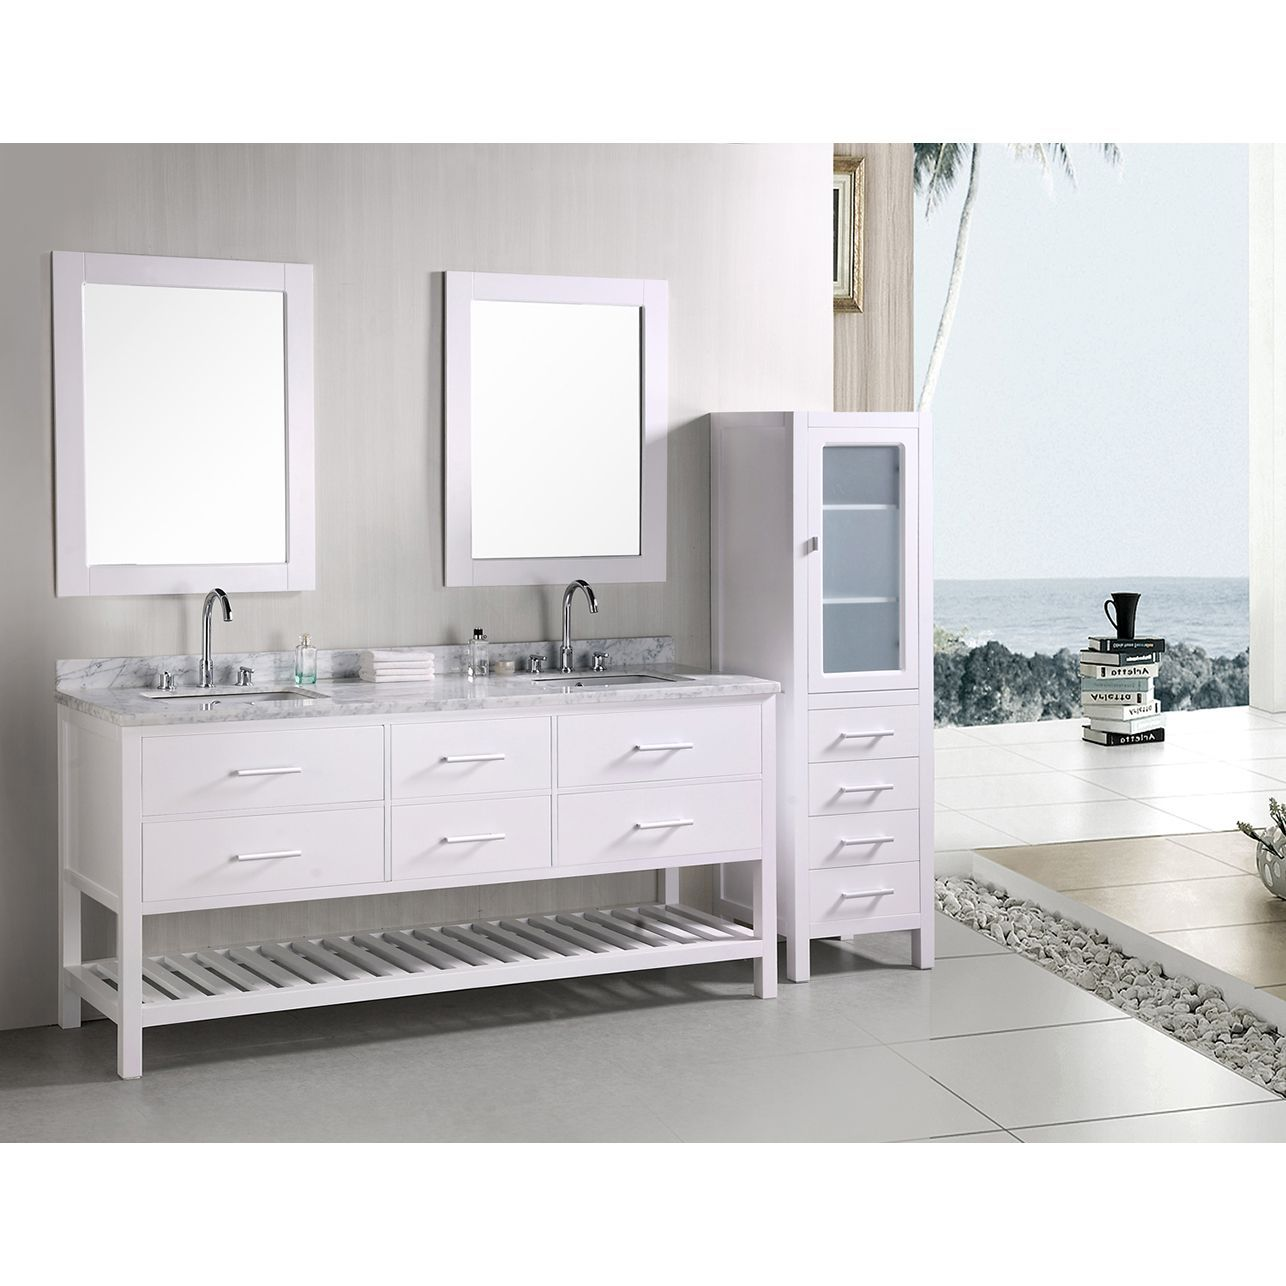 Design Element London 72Inch Double Sink Bathroom Vanity Set Classy 72 Inch Bathroom Vanity Double Sink Decorating Inspiration